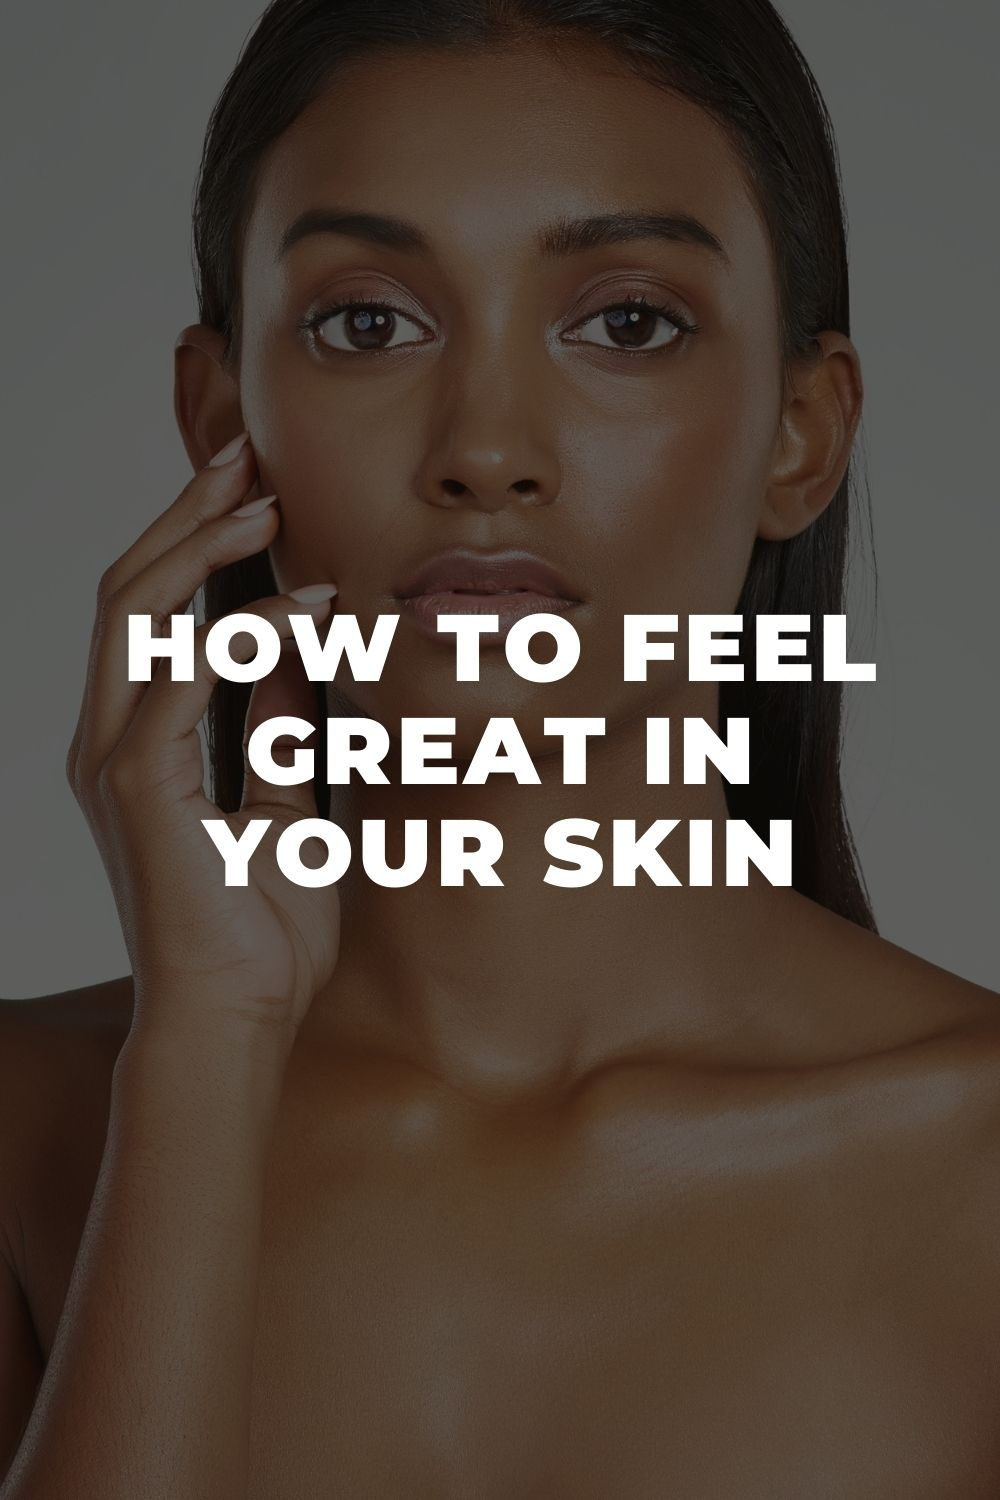 How to Feel Great in Your Skin